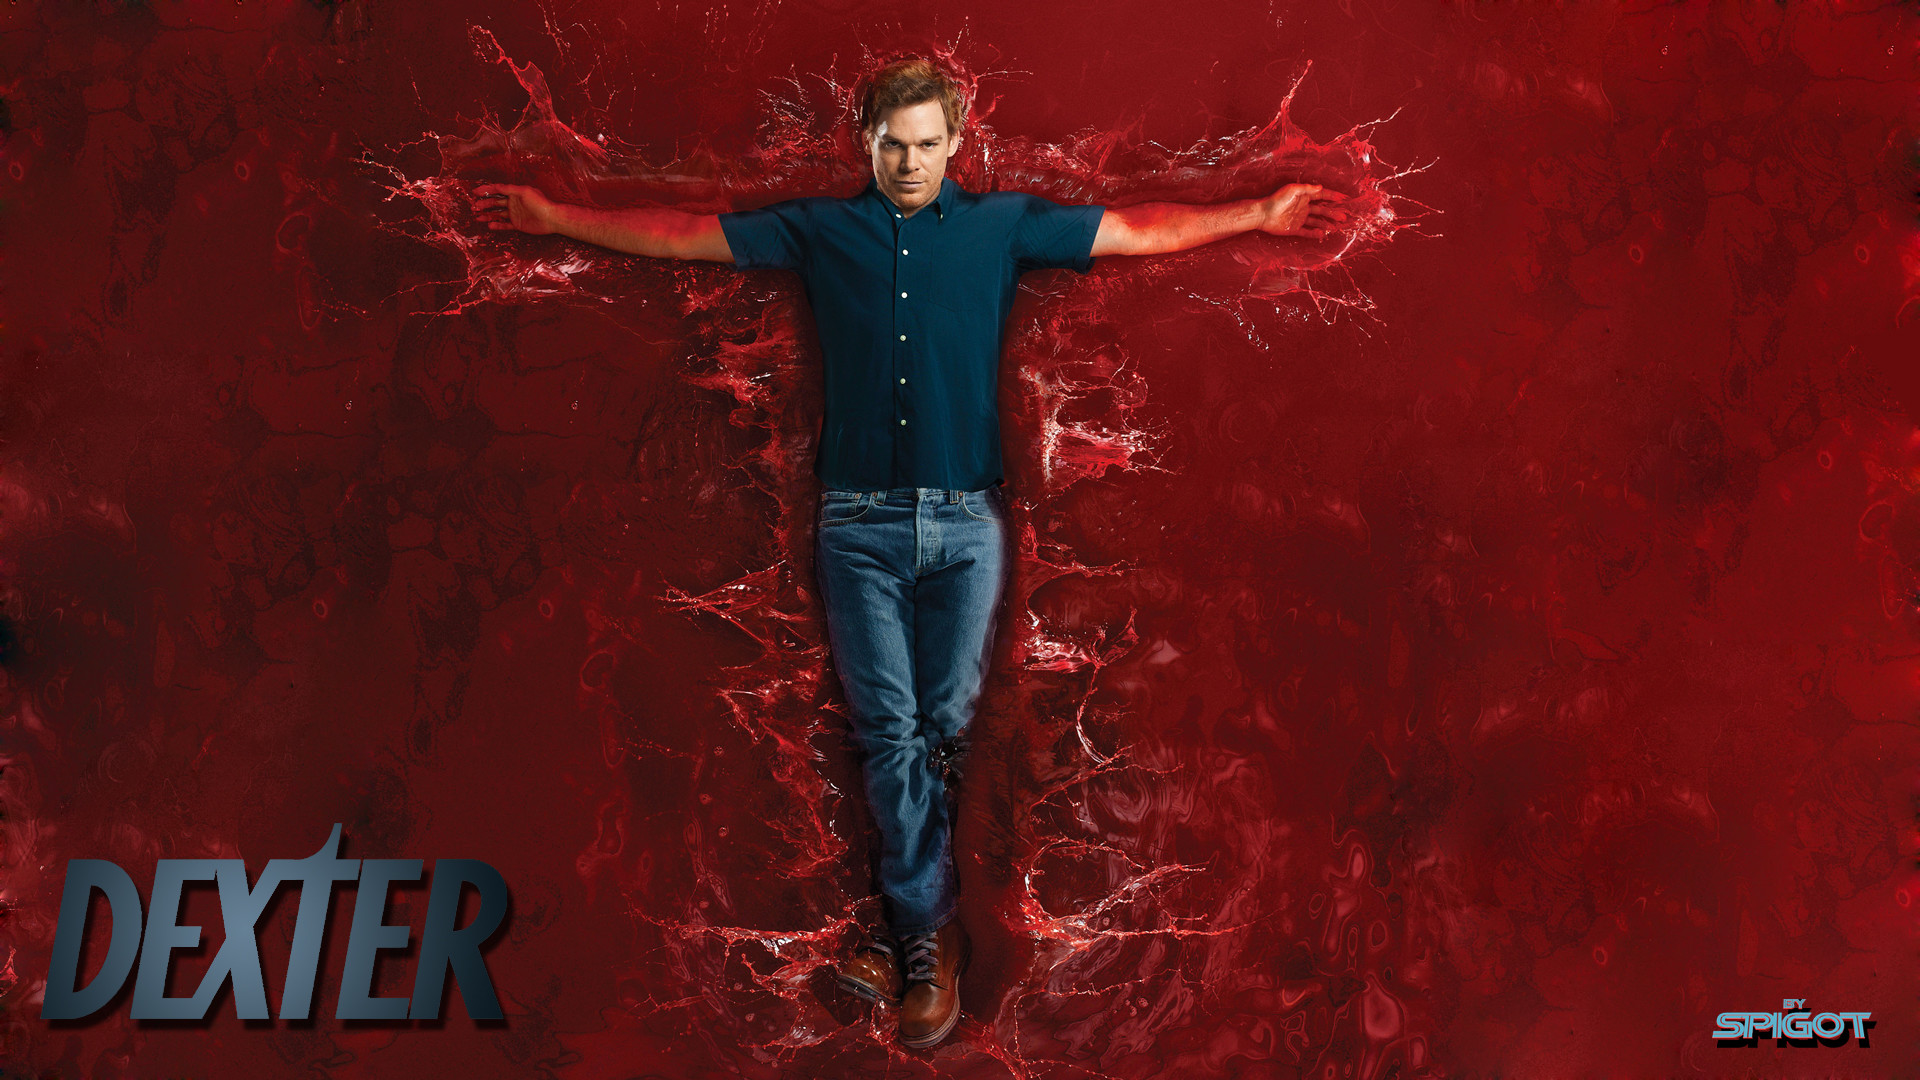 The series centers on Dexter Morgan (Michael C. Hall), a bloodstain pattern  analyst for the Miami Metro Police Department who moonlights as a serial  killer …